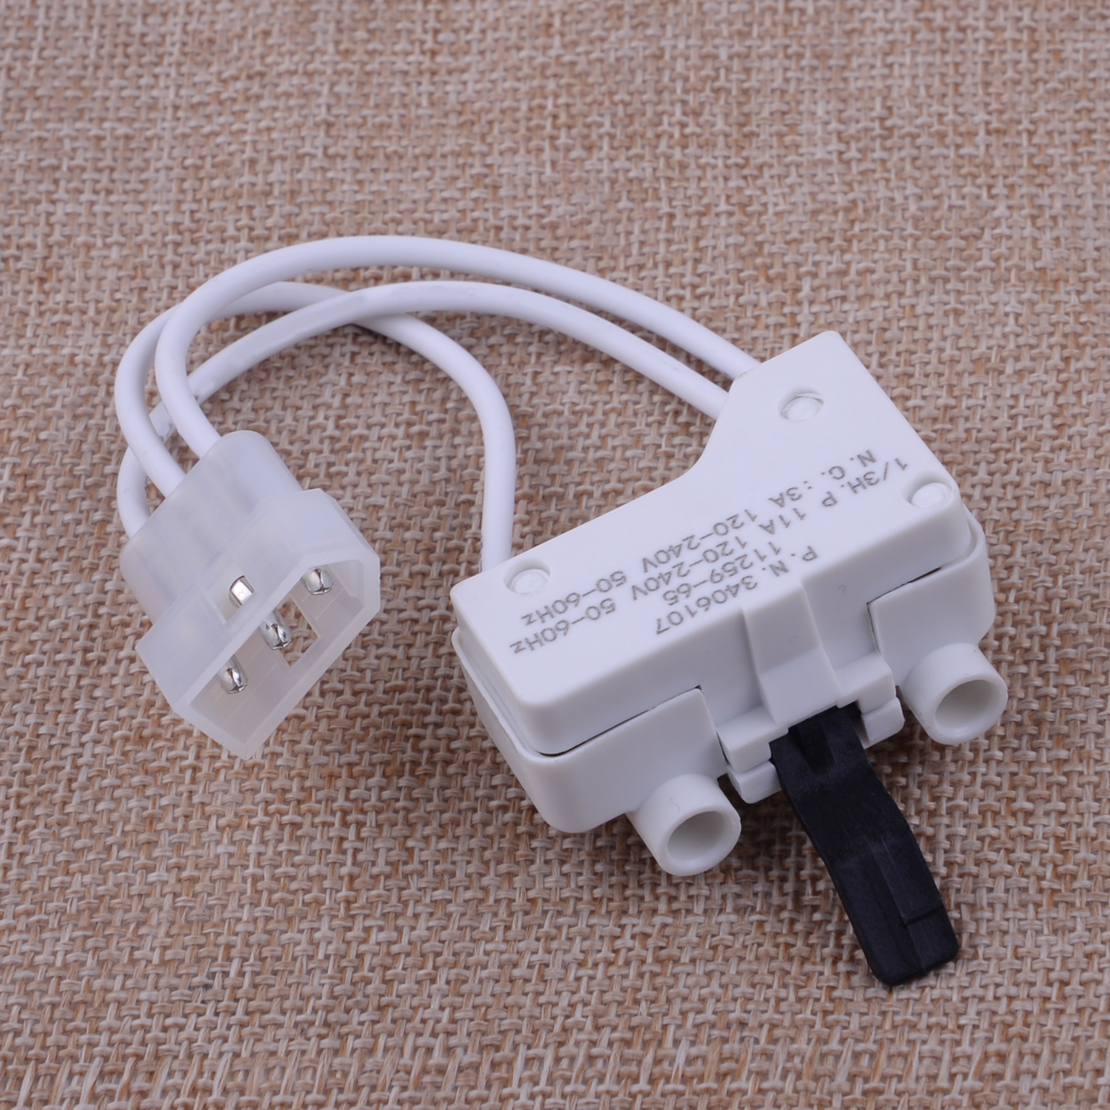 LETAOSK High Quality White Plastic Dryer Door Switch Kit 3406107 3406109 Fit For Whirlpool Kenmore Sears Maytage Roper